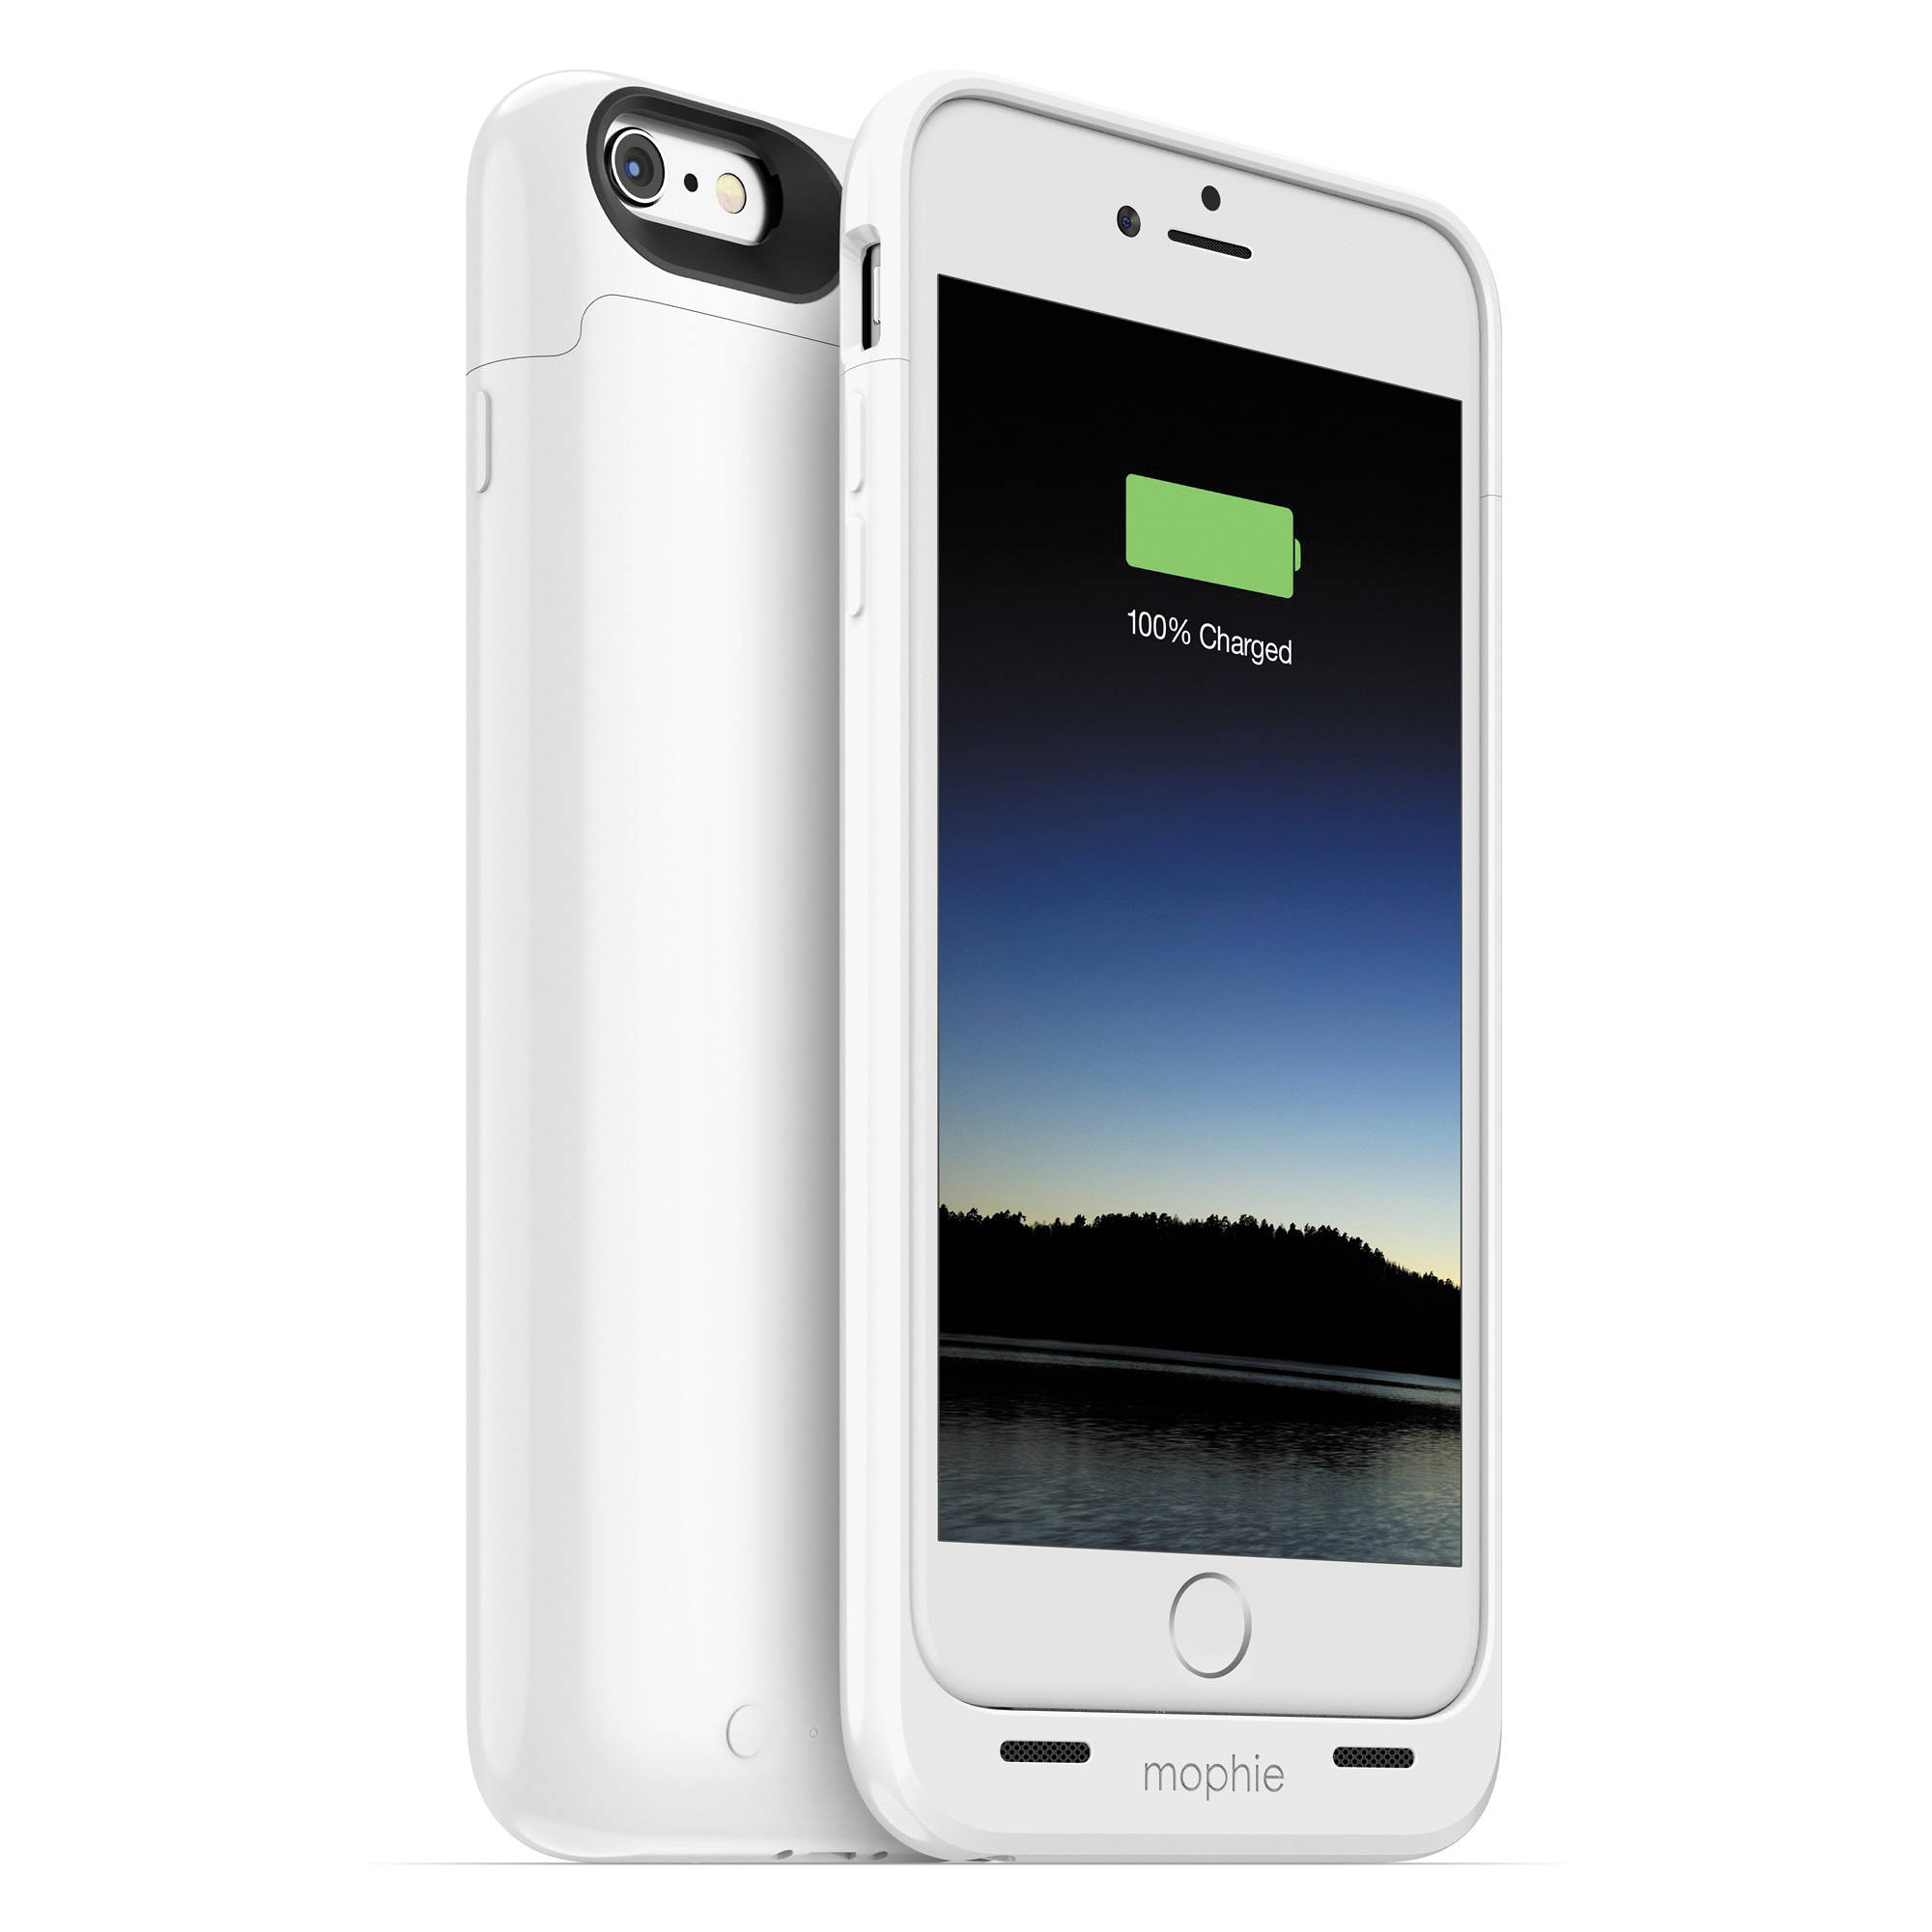 mophie juice pack Battery Case for iPhone 6 Plus/6s Plus (White)